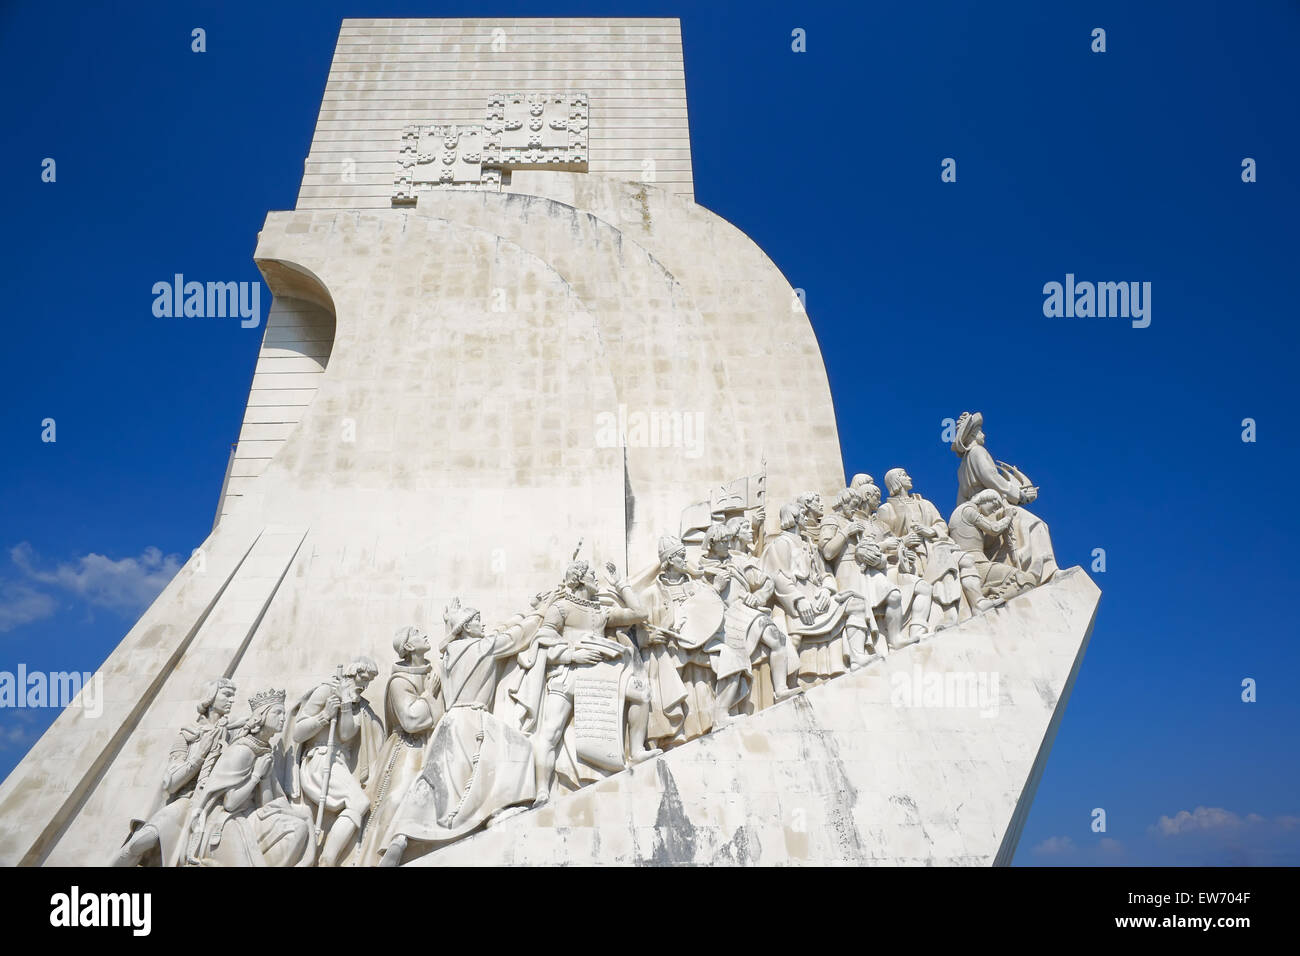 Monument of the Discoveries, Belem, Lisbon, Portugal, Europe Stock Photo